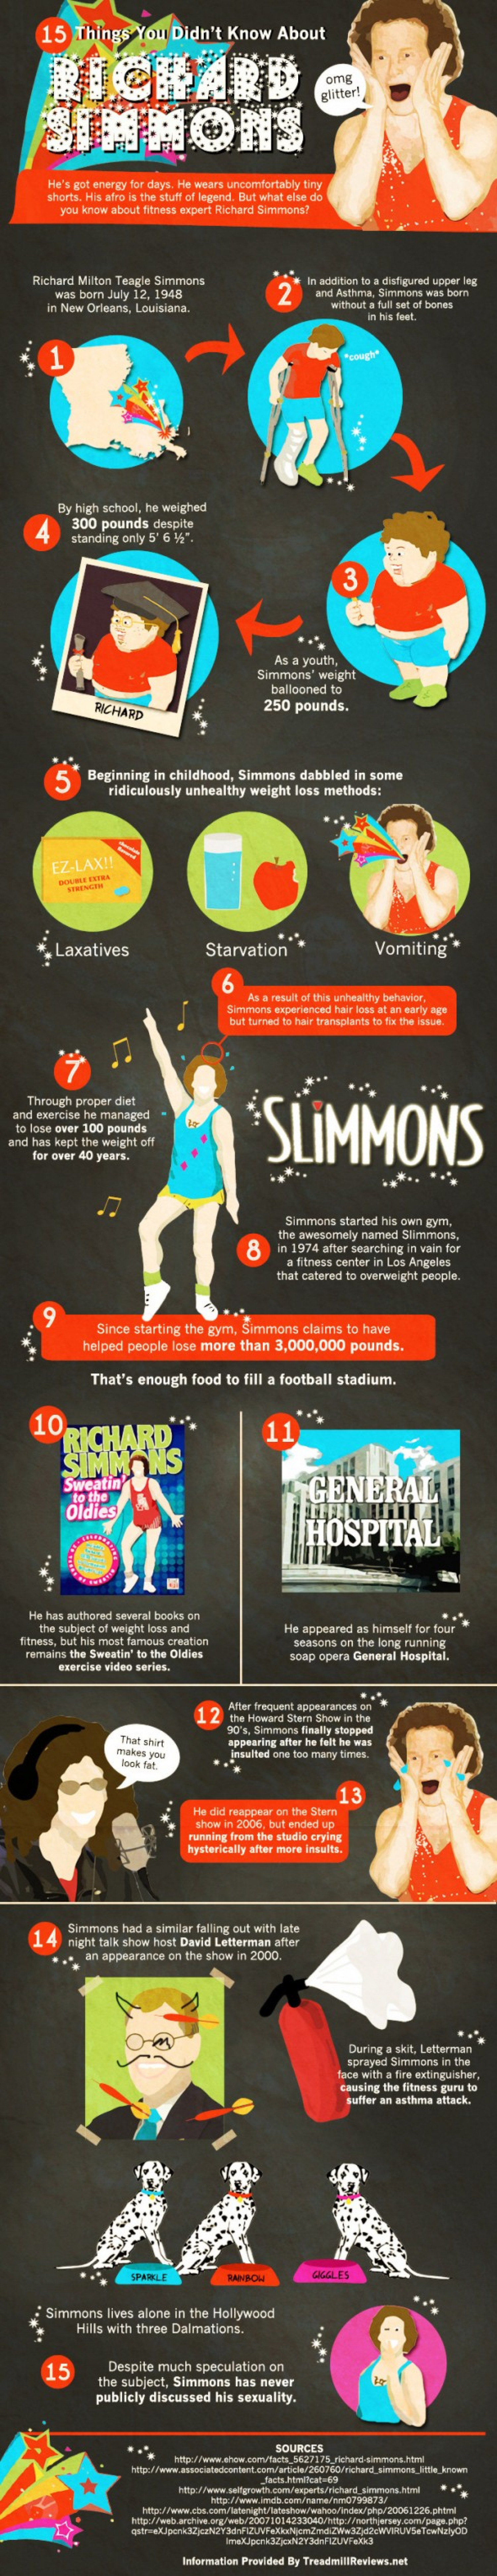 15 Things You Didn't Know About Richard Simmons Infographic